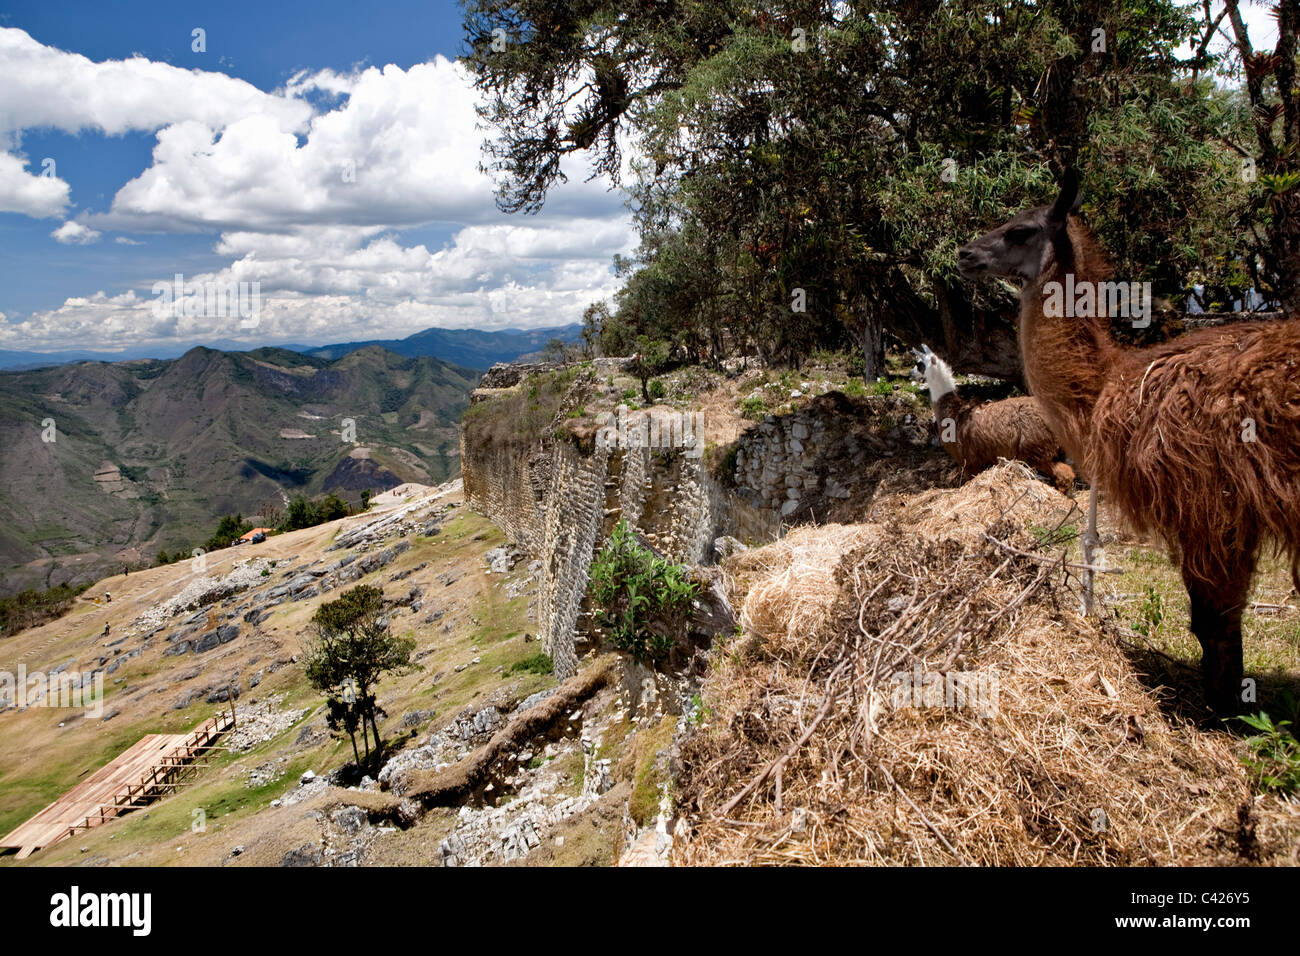 Peru, Chachapoyas, Kuelap mountain settlement and citadel city, built by the Chachapoyas culture (900-1200 AD). - Stock Image